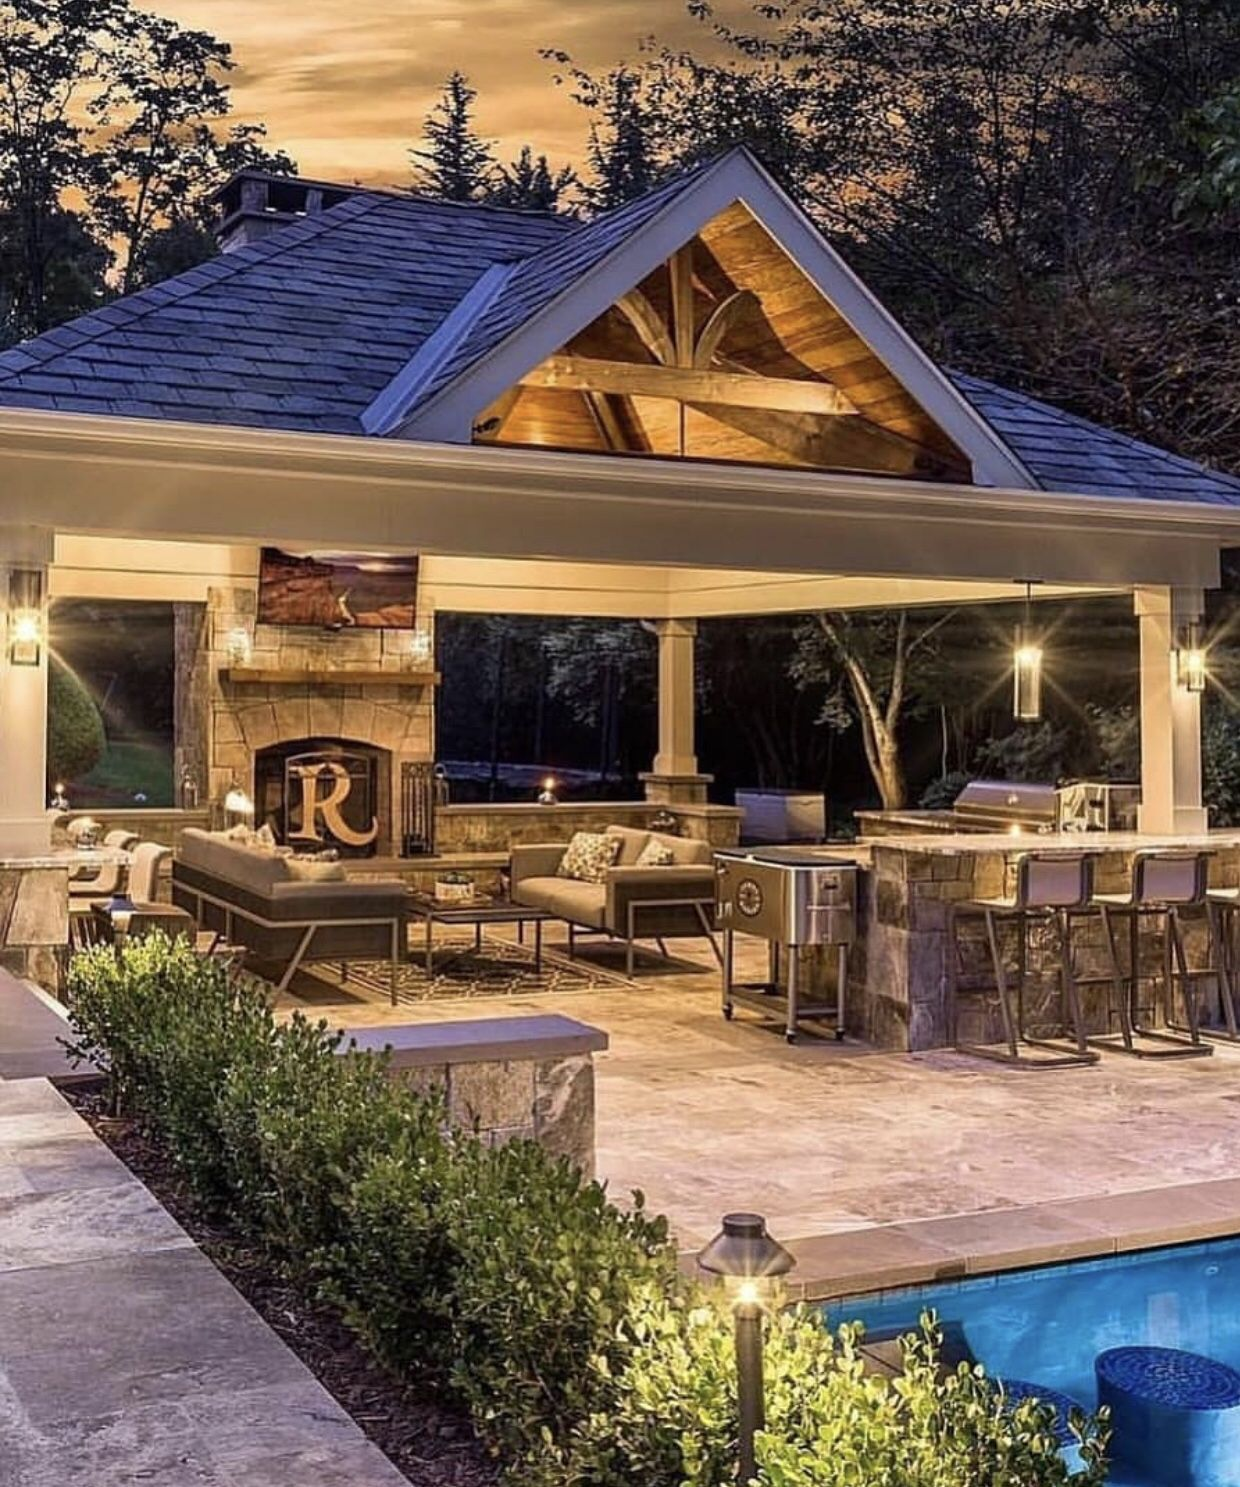 Outdoor Kitchen With Thatched Gazebo Outdoor In 2019: Pin By Chris Votaw On Pool Patio In 2019